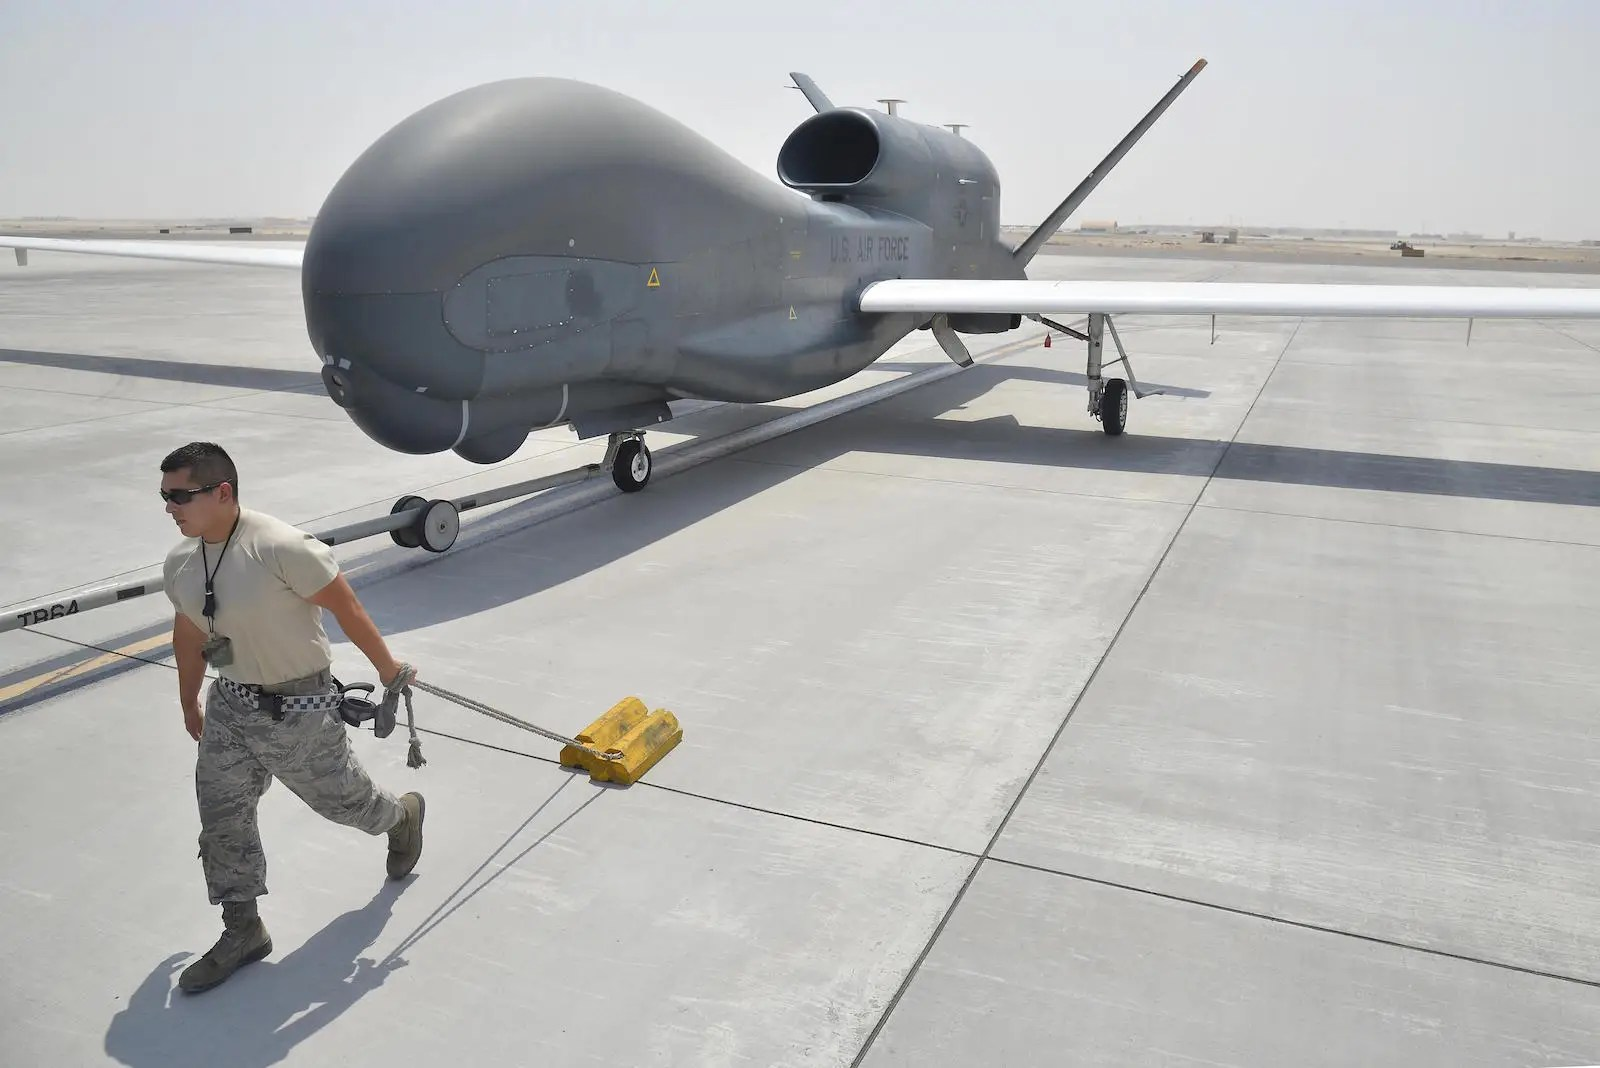 US Air Force RQ-4 Global Hawk unmanned aircraft drone